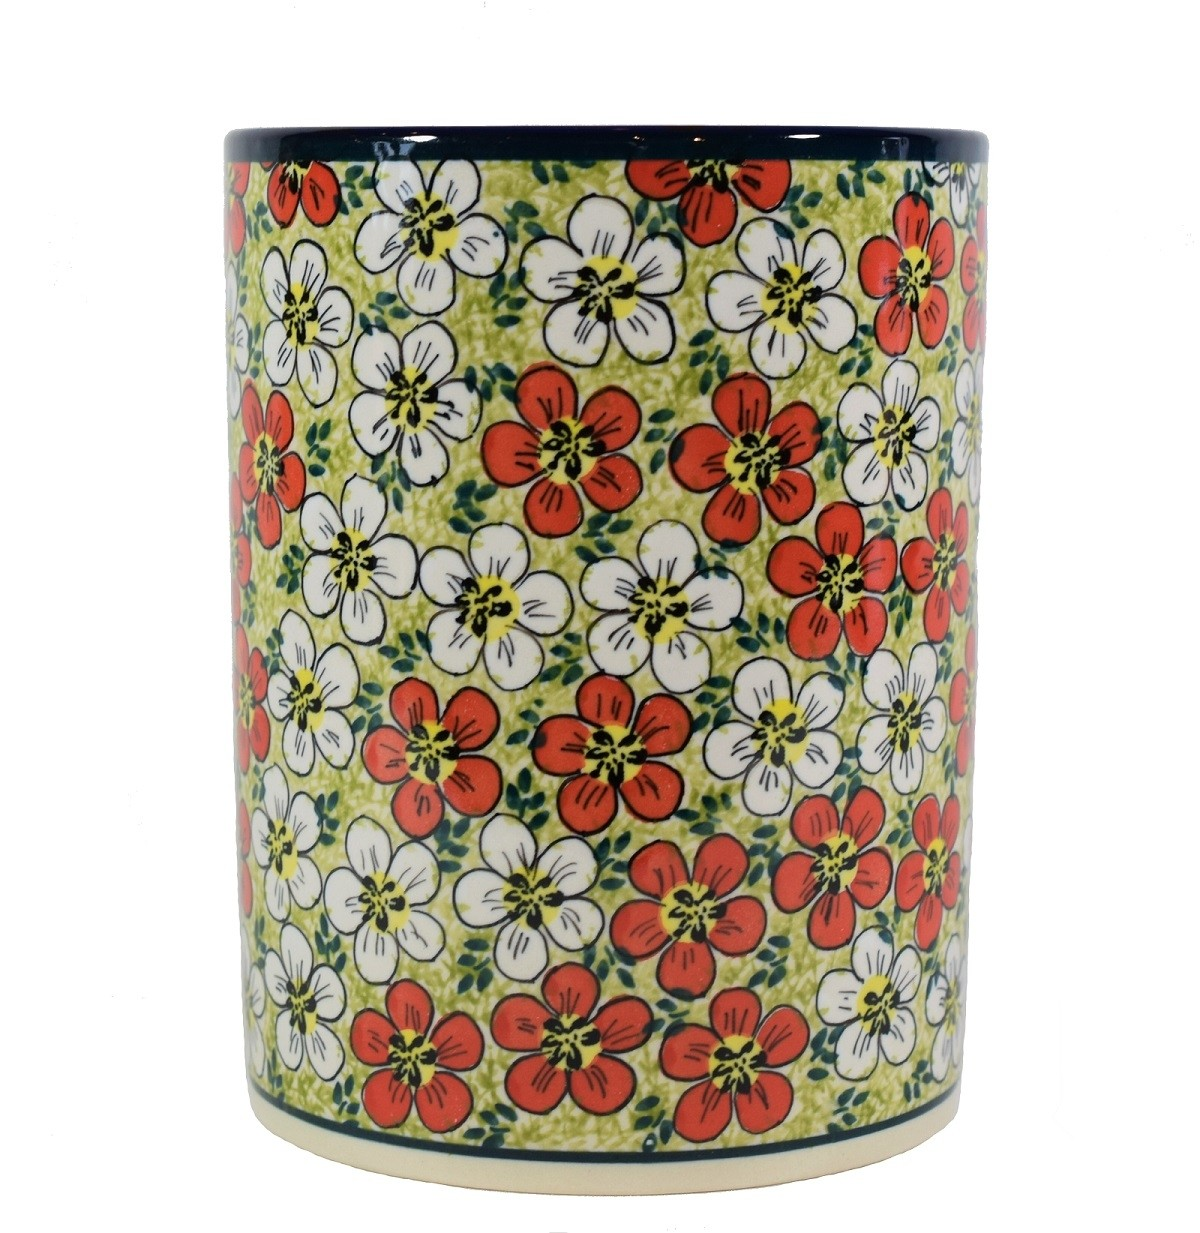 Red Bacopa utensil jar